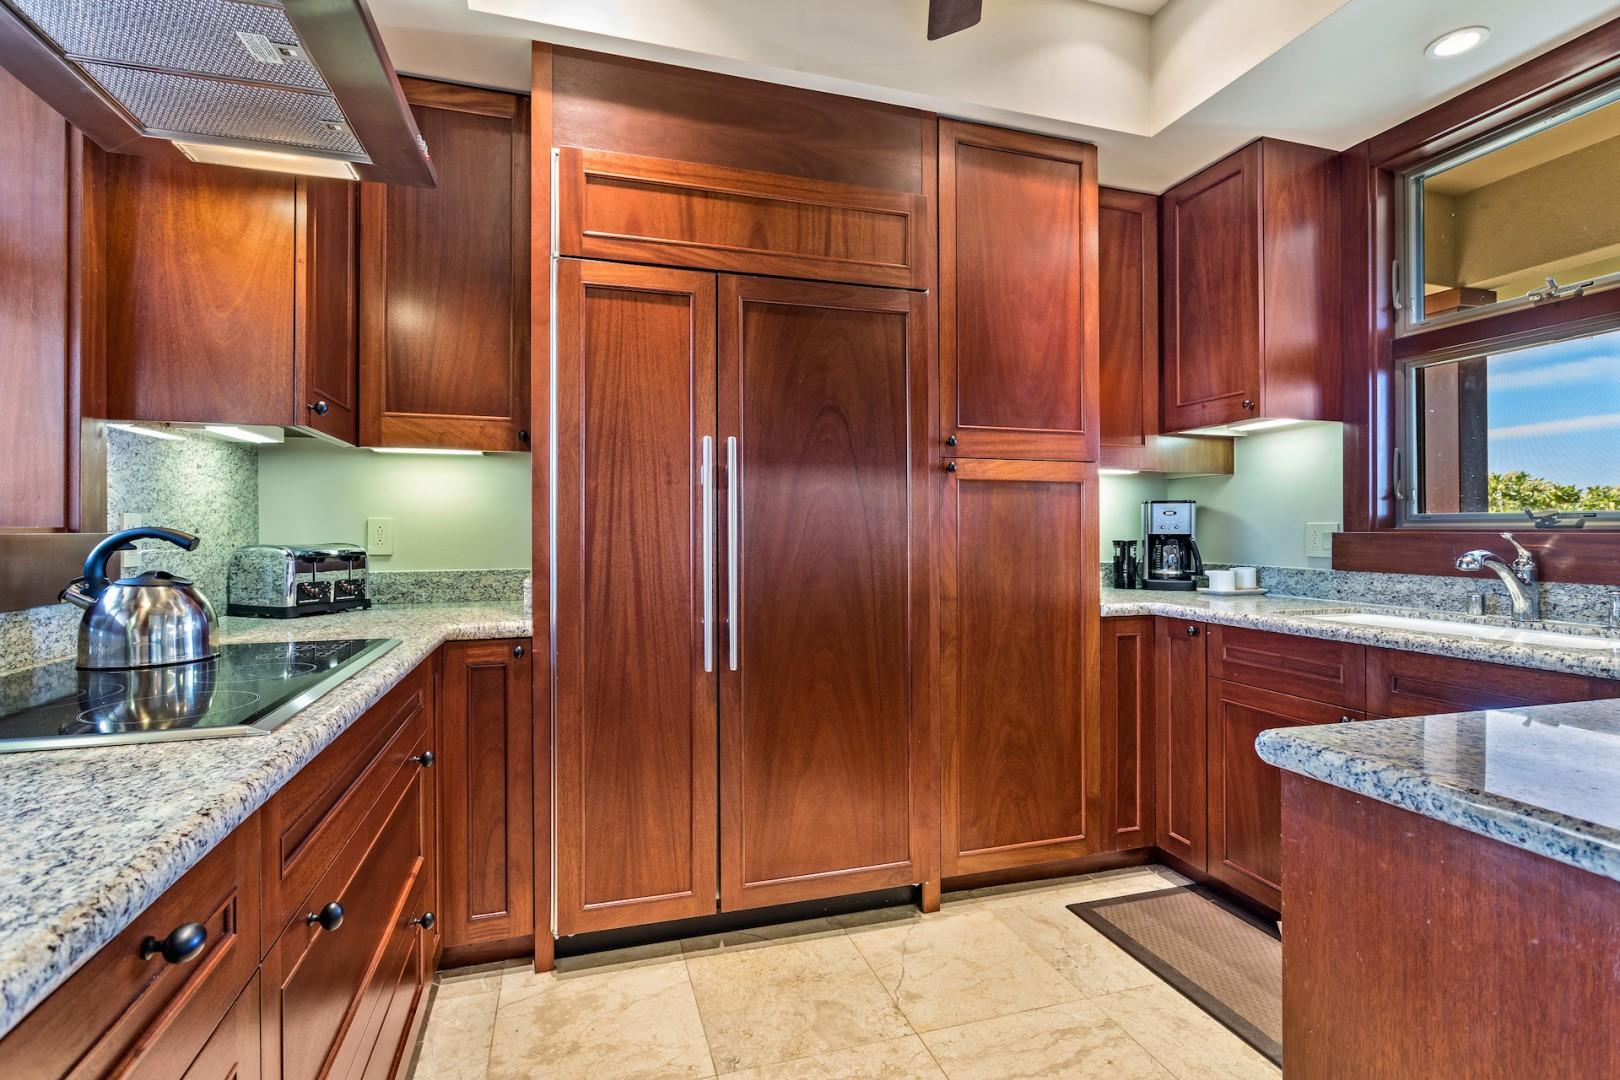 Elegant wood paneling and an ocean view from the kitchen sink.